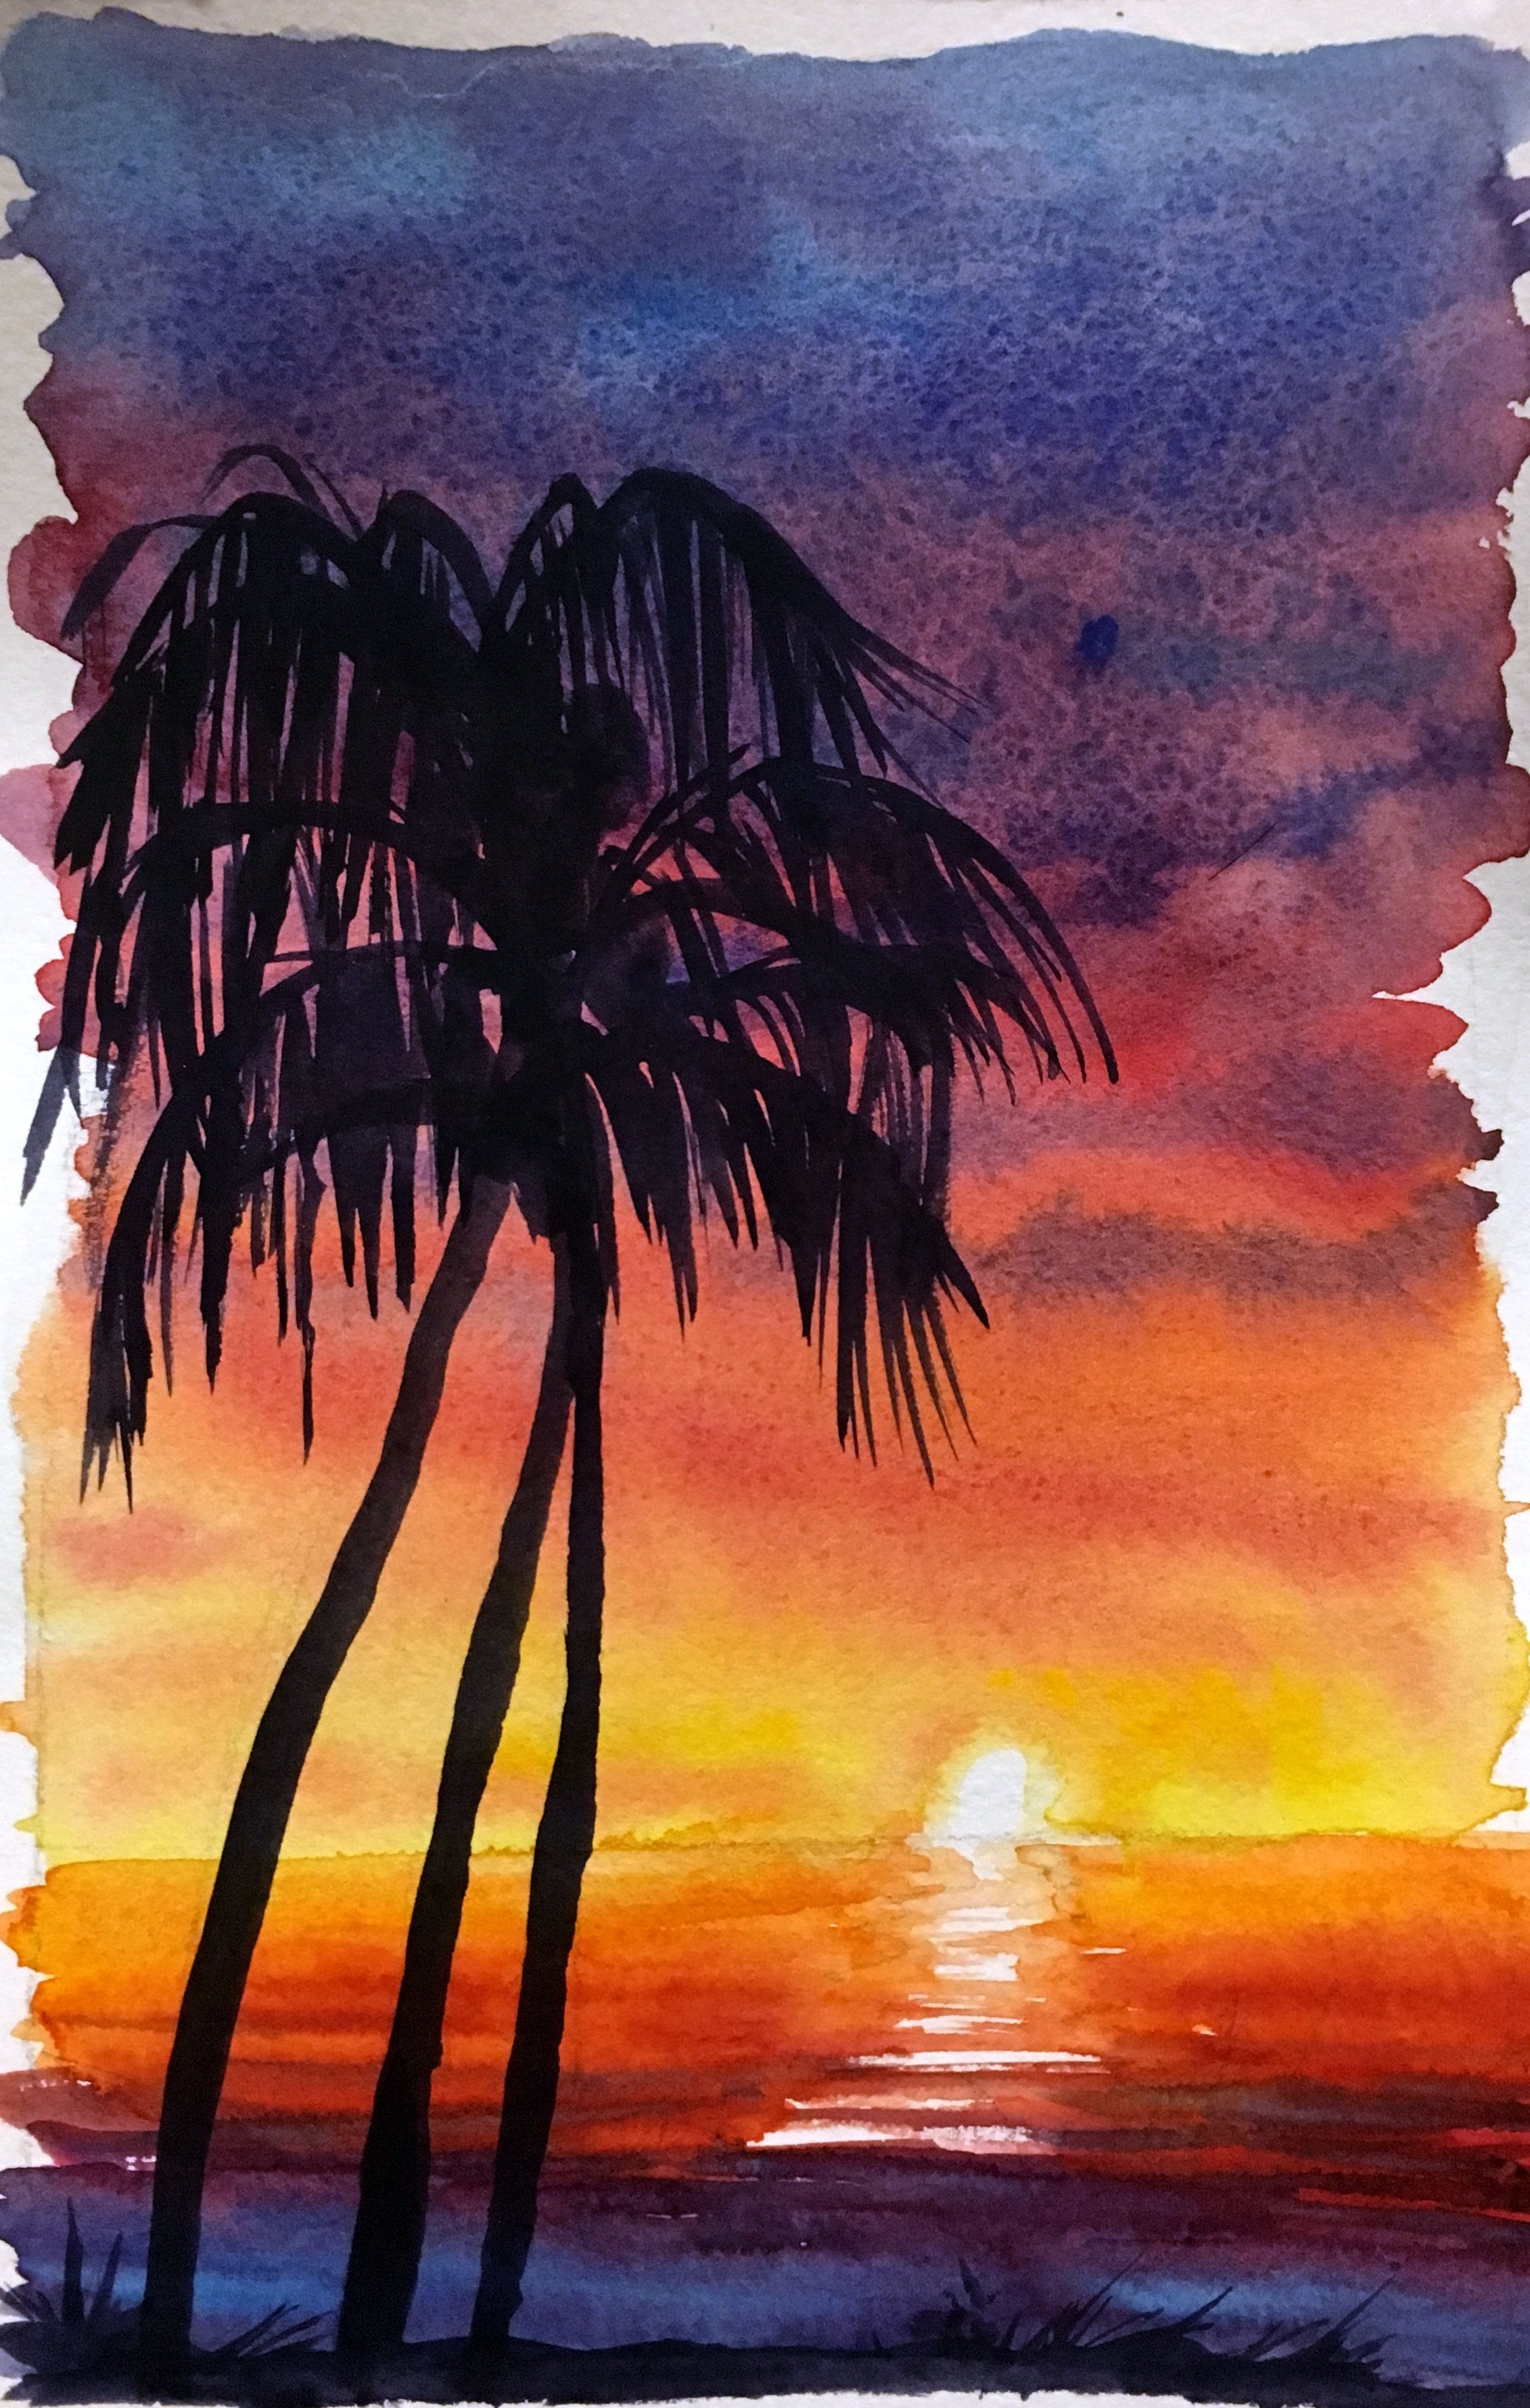 How To Watercolor Paint A Colorful Sunset Sky From Memory Without Breaking Leg